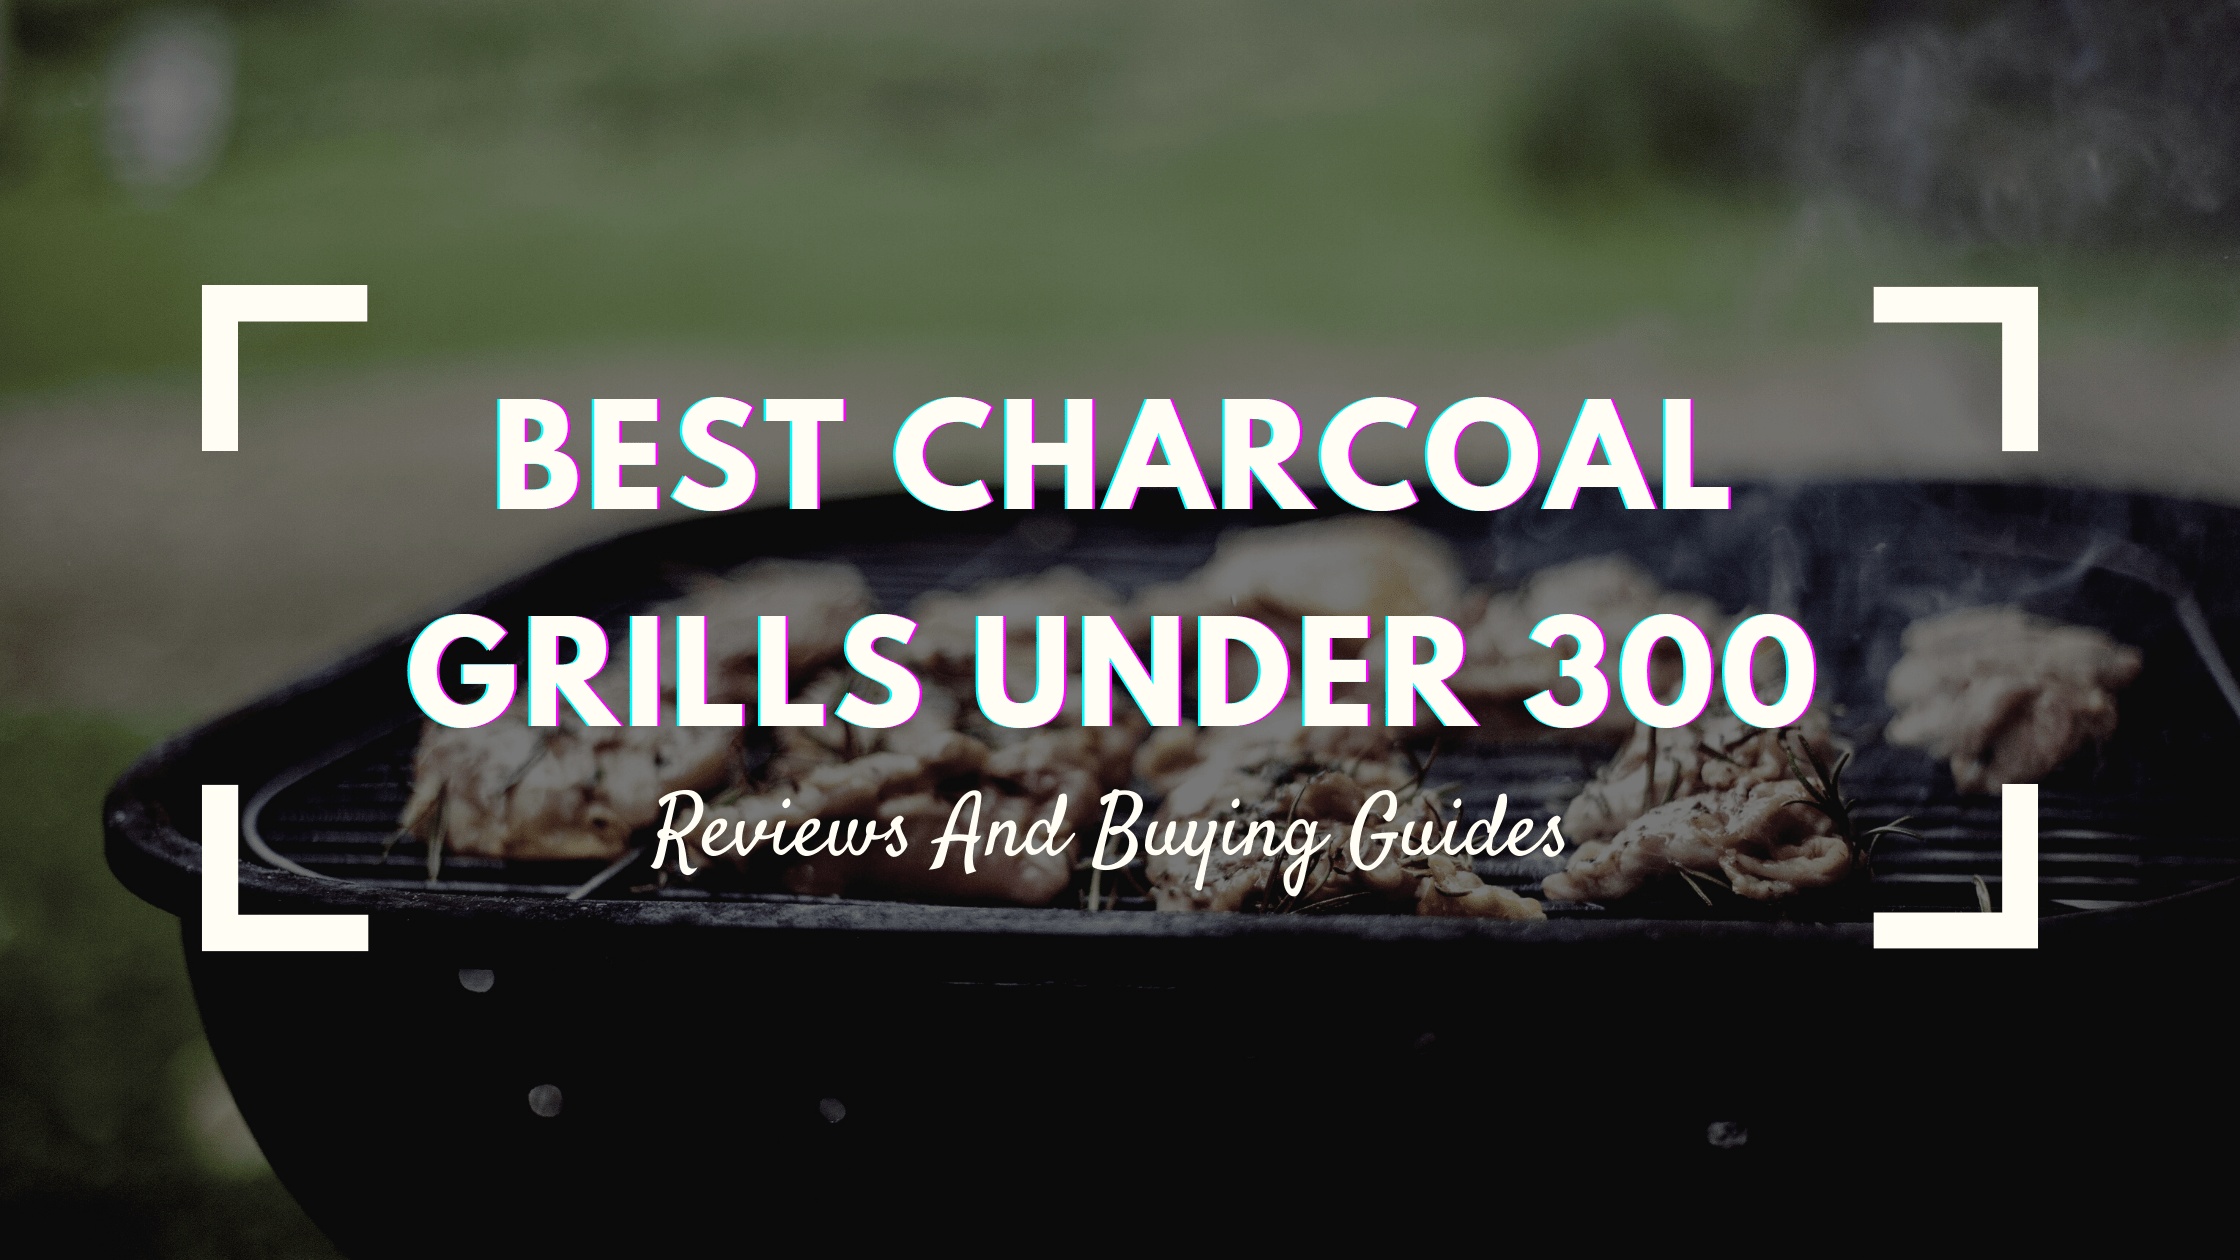 Best Charcoal Grills Under 300Best Charcoal Grills Under 300